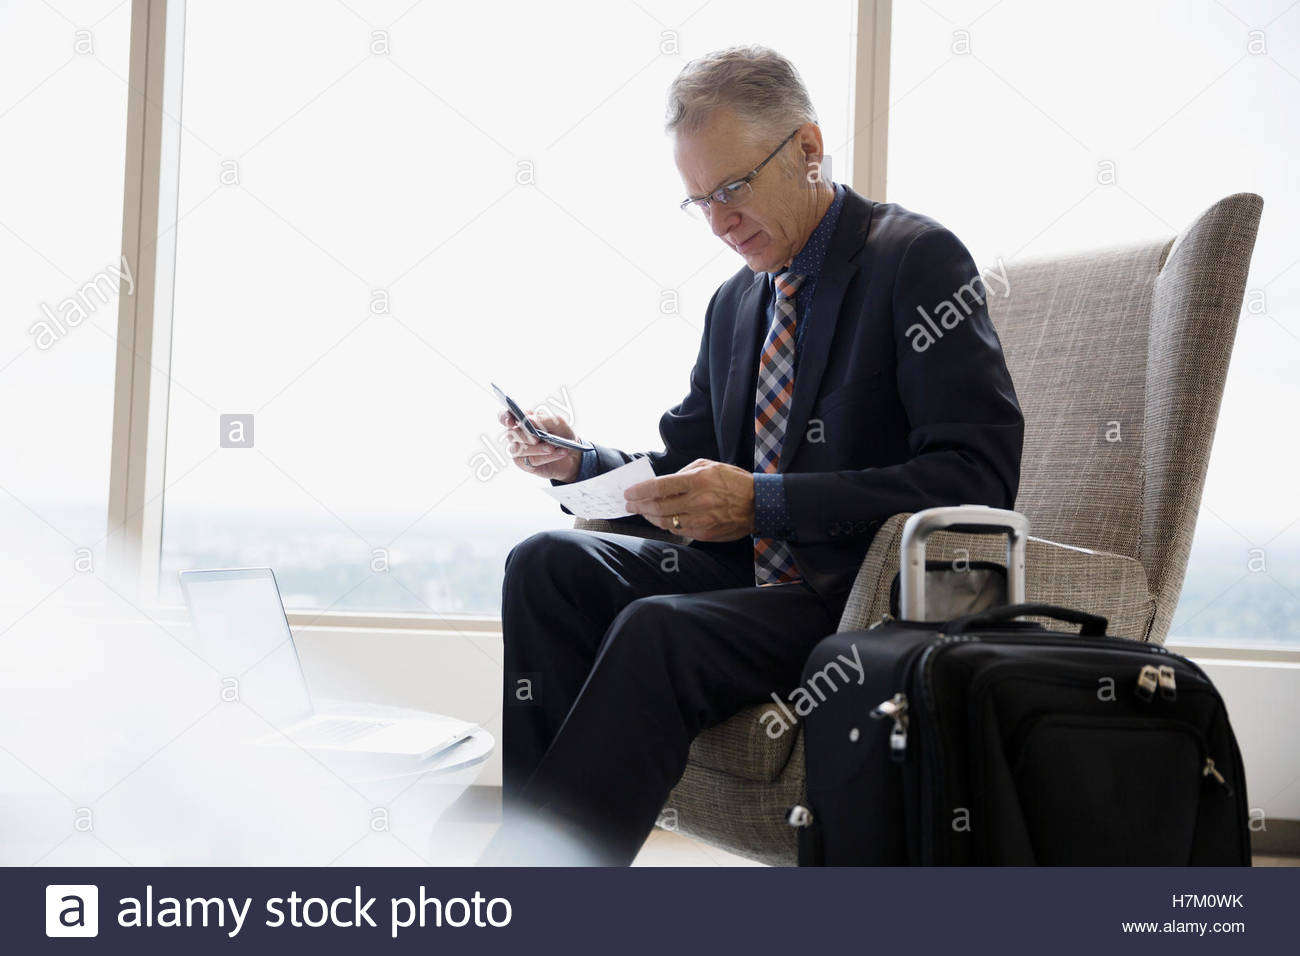 Businessman with luggage checking ticket in airport lounge - Stock Image